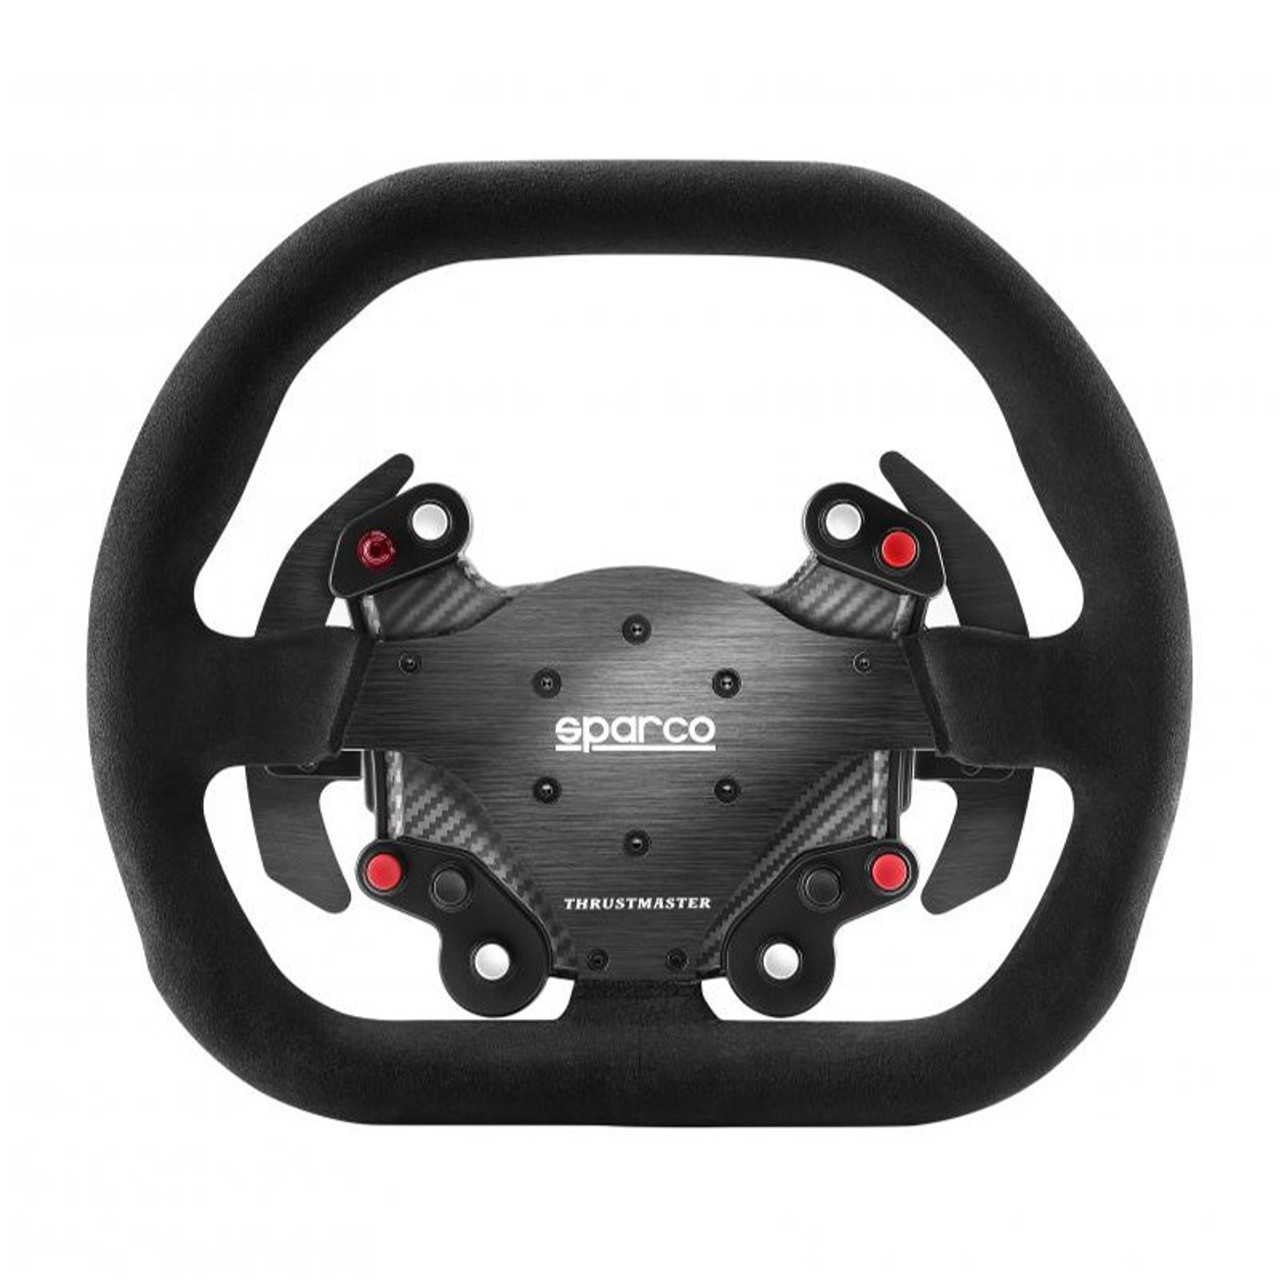 Image for Thrustmaster Sparco P310 Mod Competition Wheel Add-On for PC/PS4/XB1 CX Computer Superstore